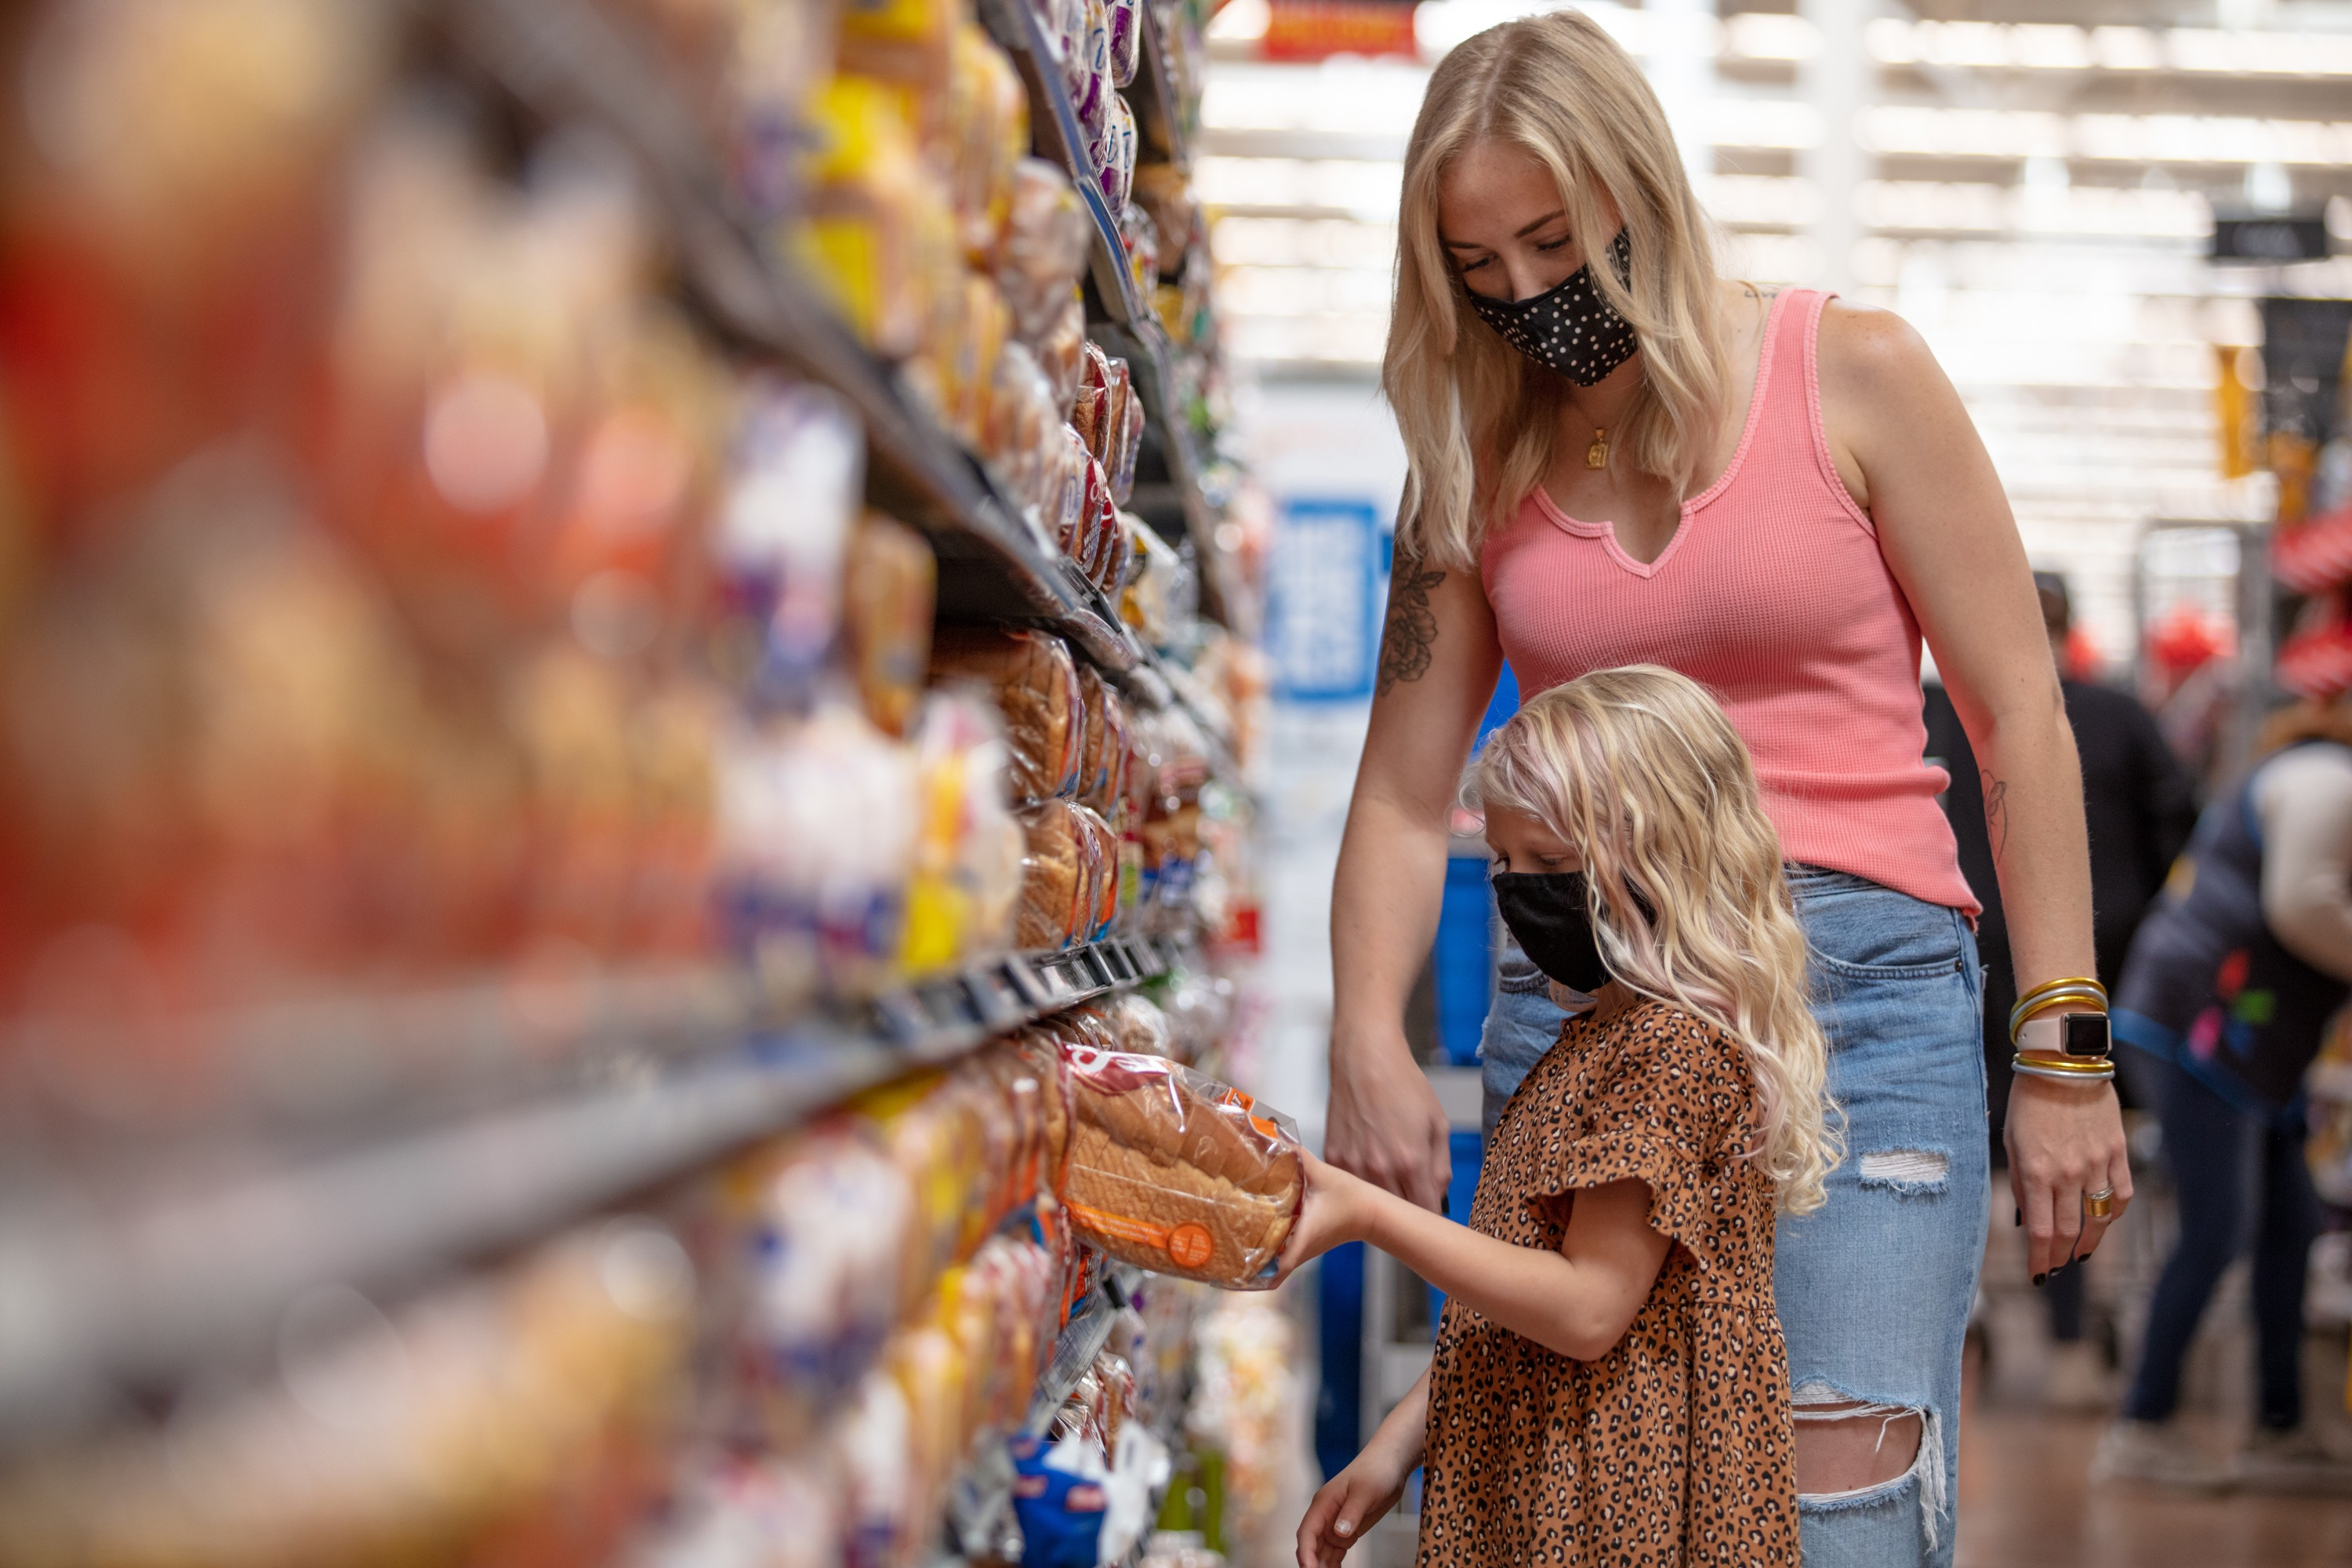 Walmart customers, Calley Williams and her daughter, wear masks while shopping for bread